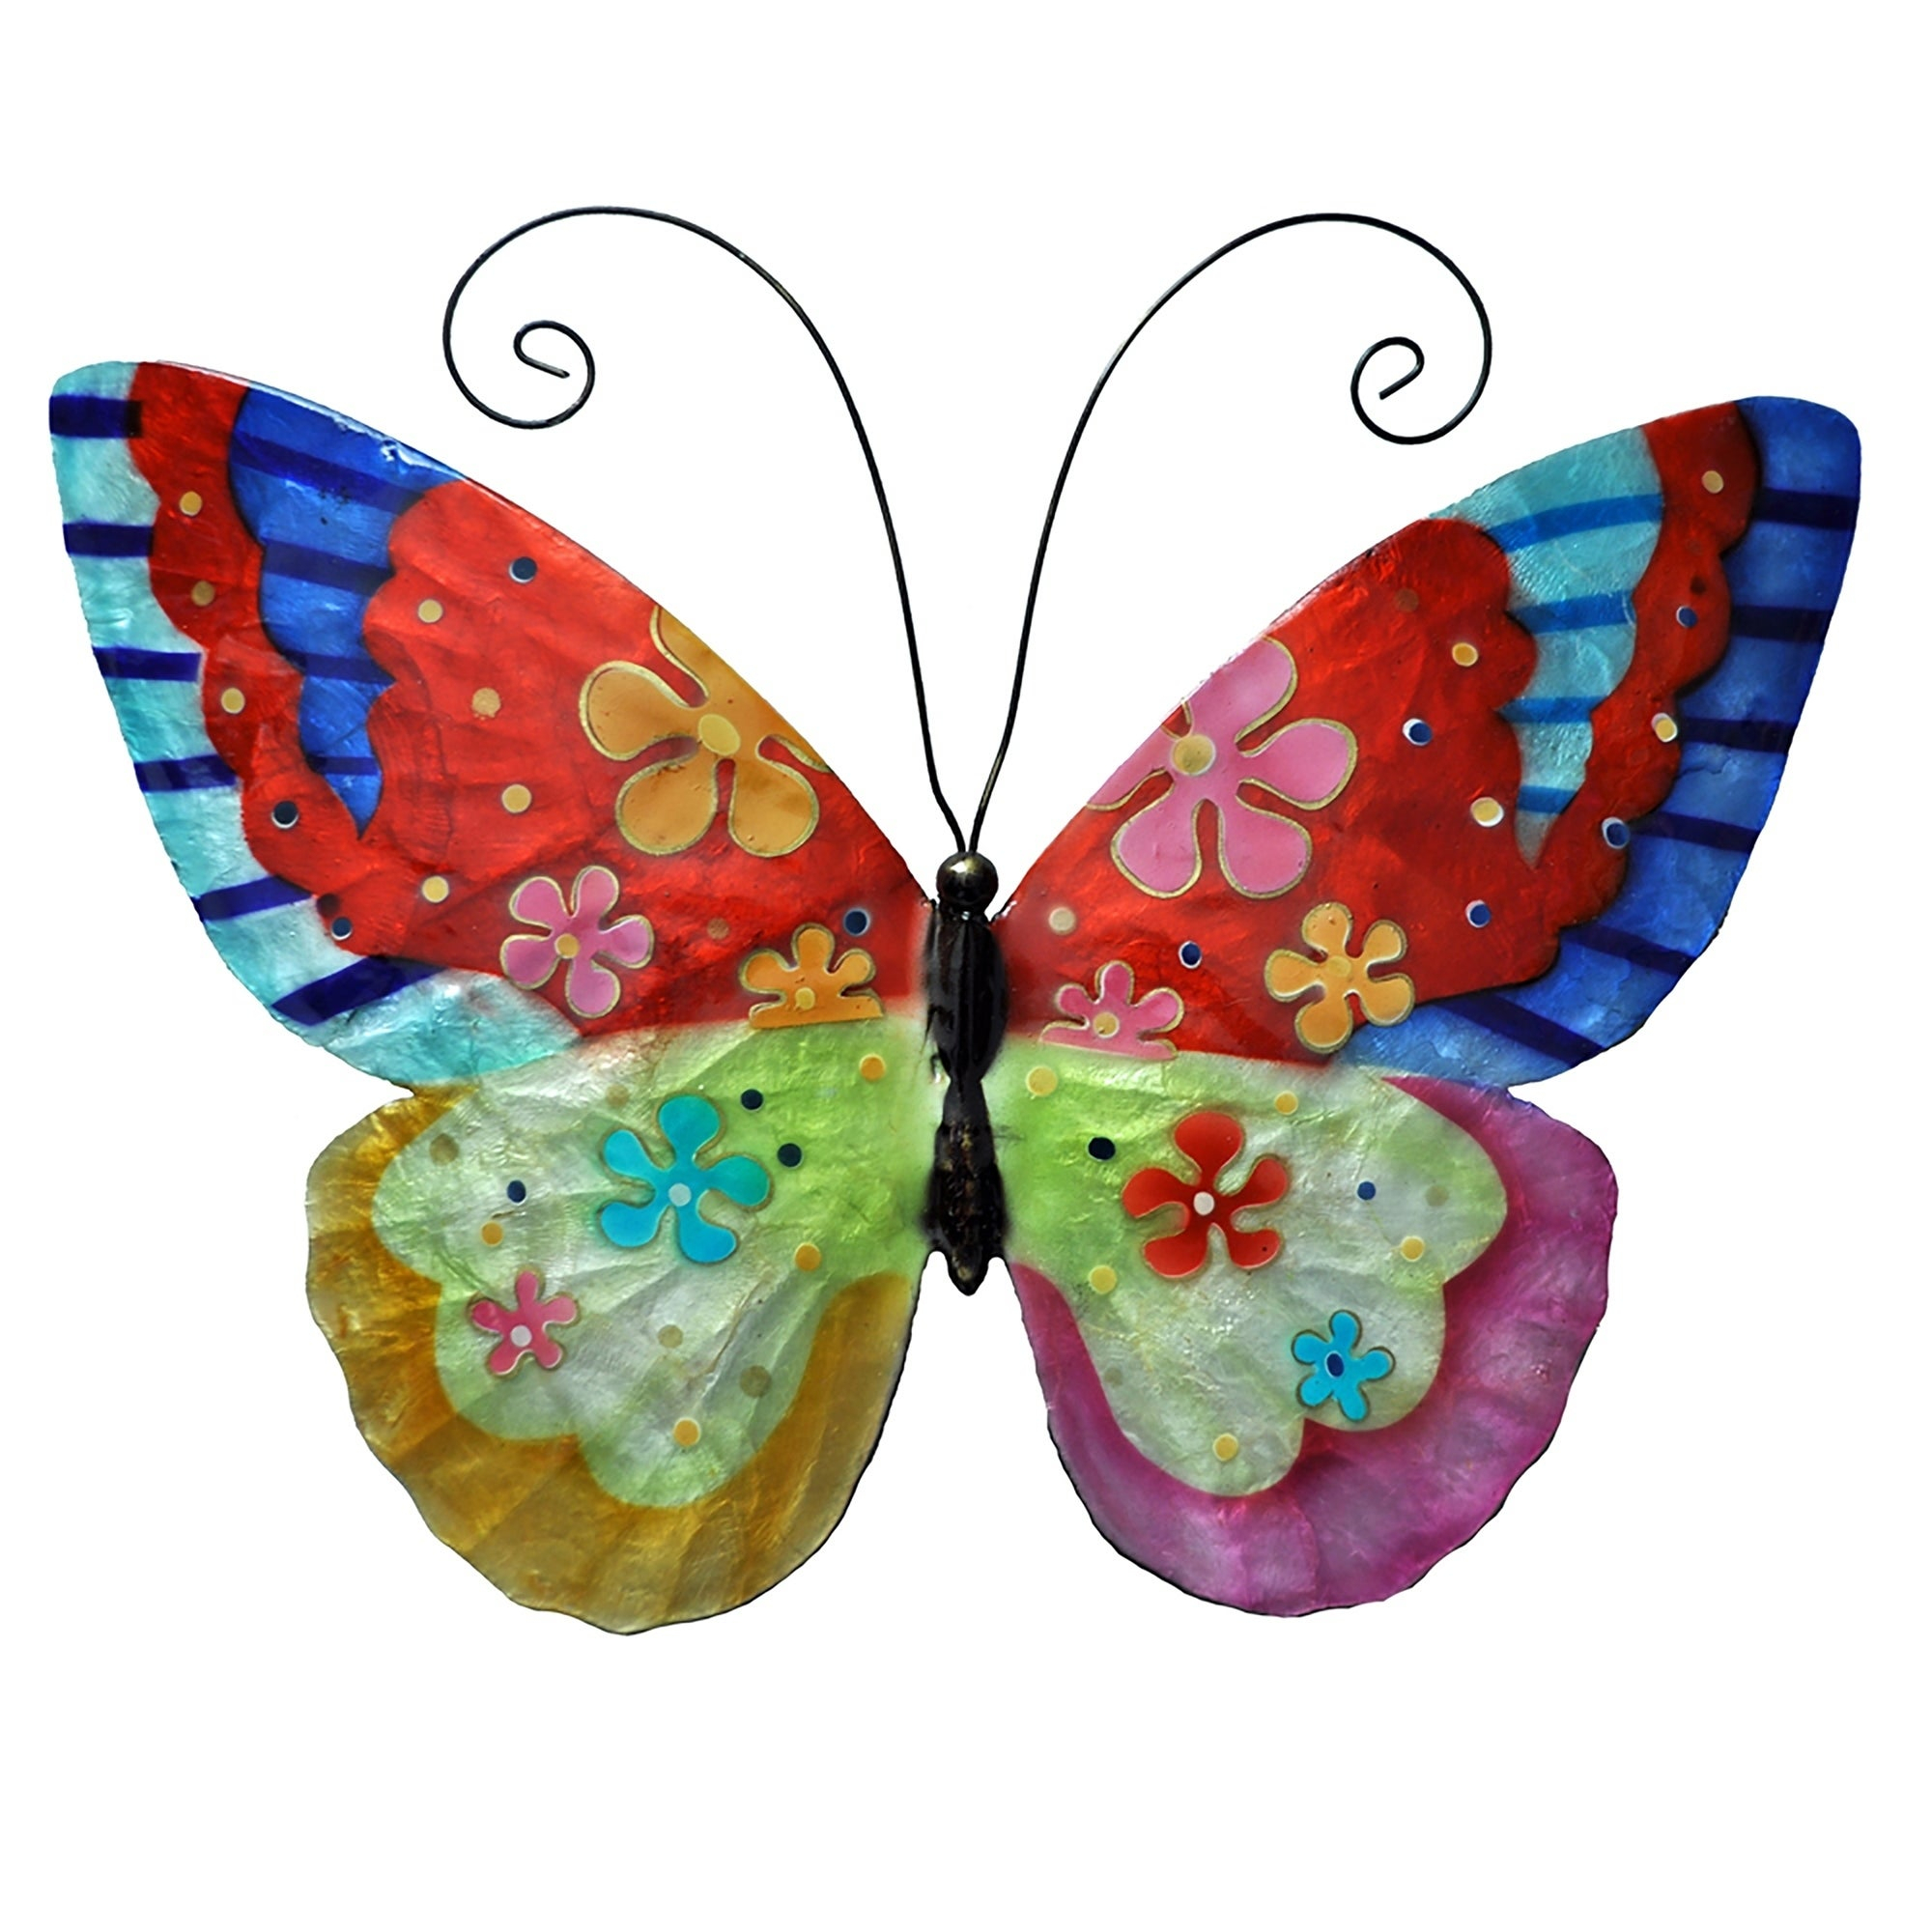 3 Piece Capri Butterfly Wall Decor Sets Inside Newest Metal Wall Sculptures (View 12 of 20)